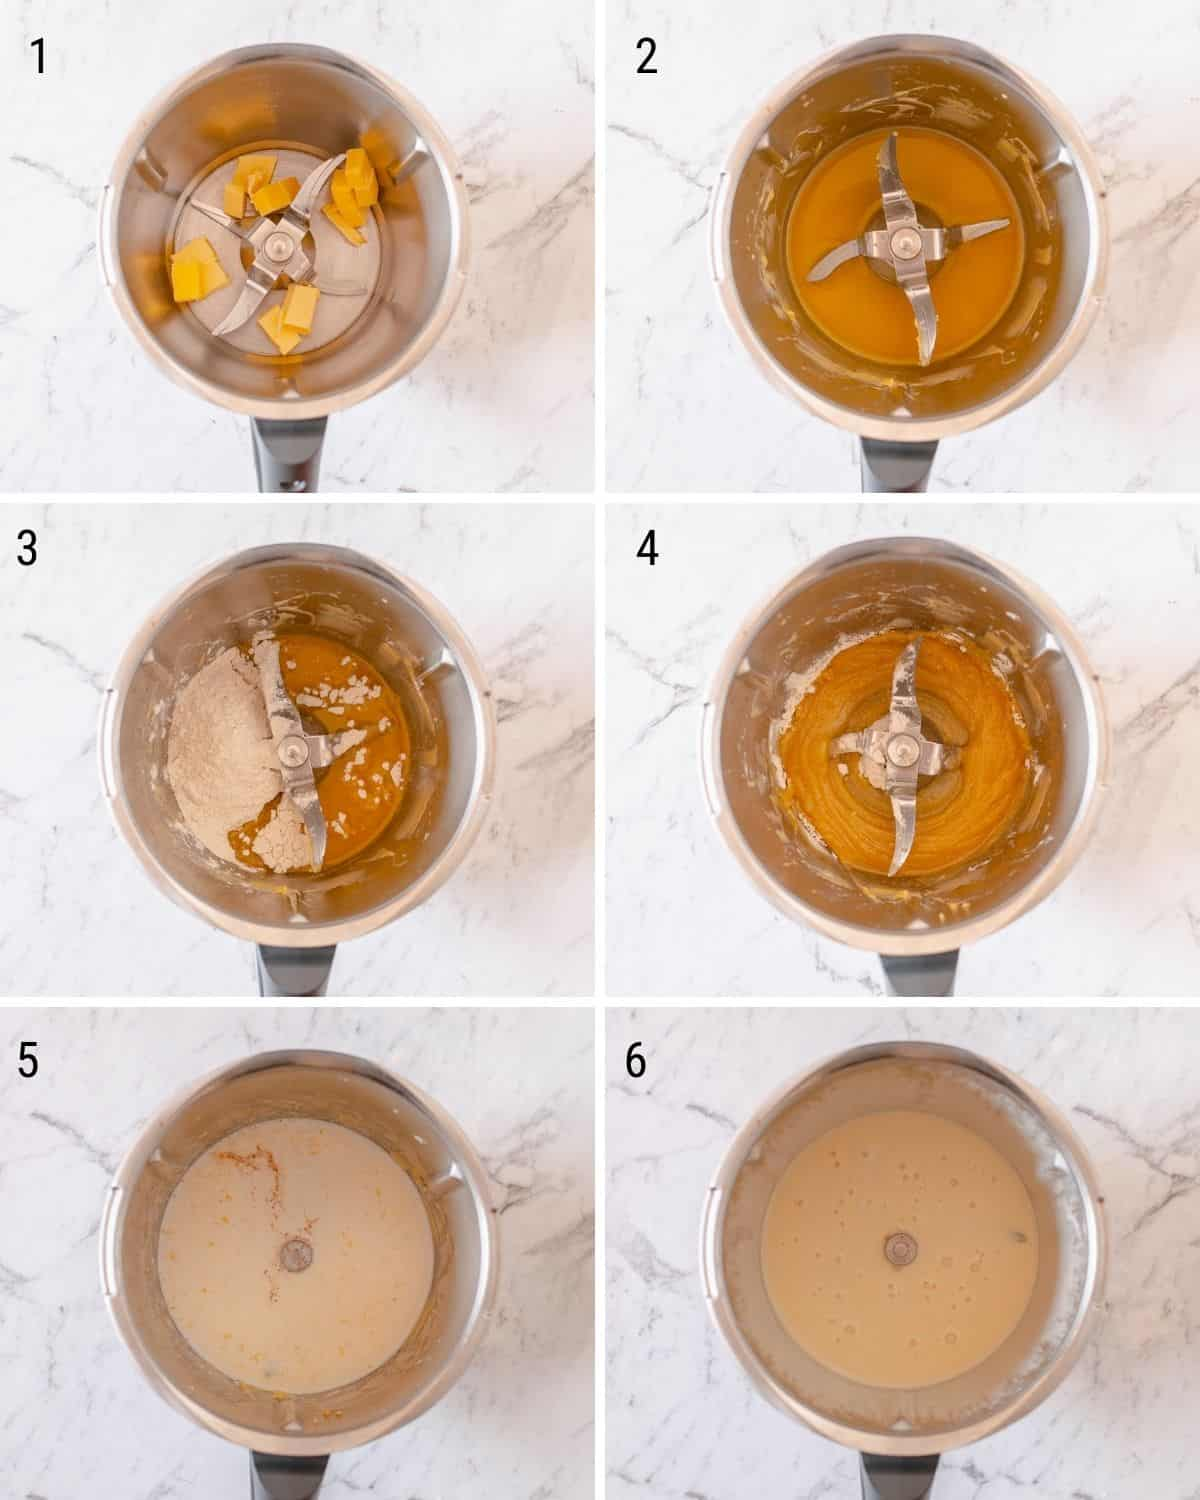 a collection of images explaining how to make bechamel sauce in the Thermomix.